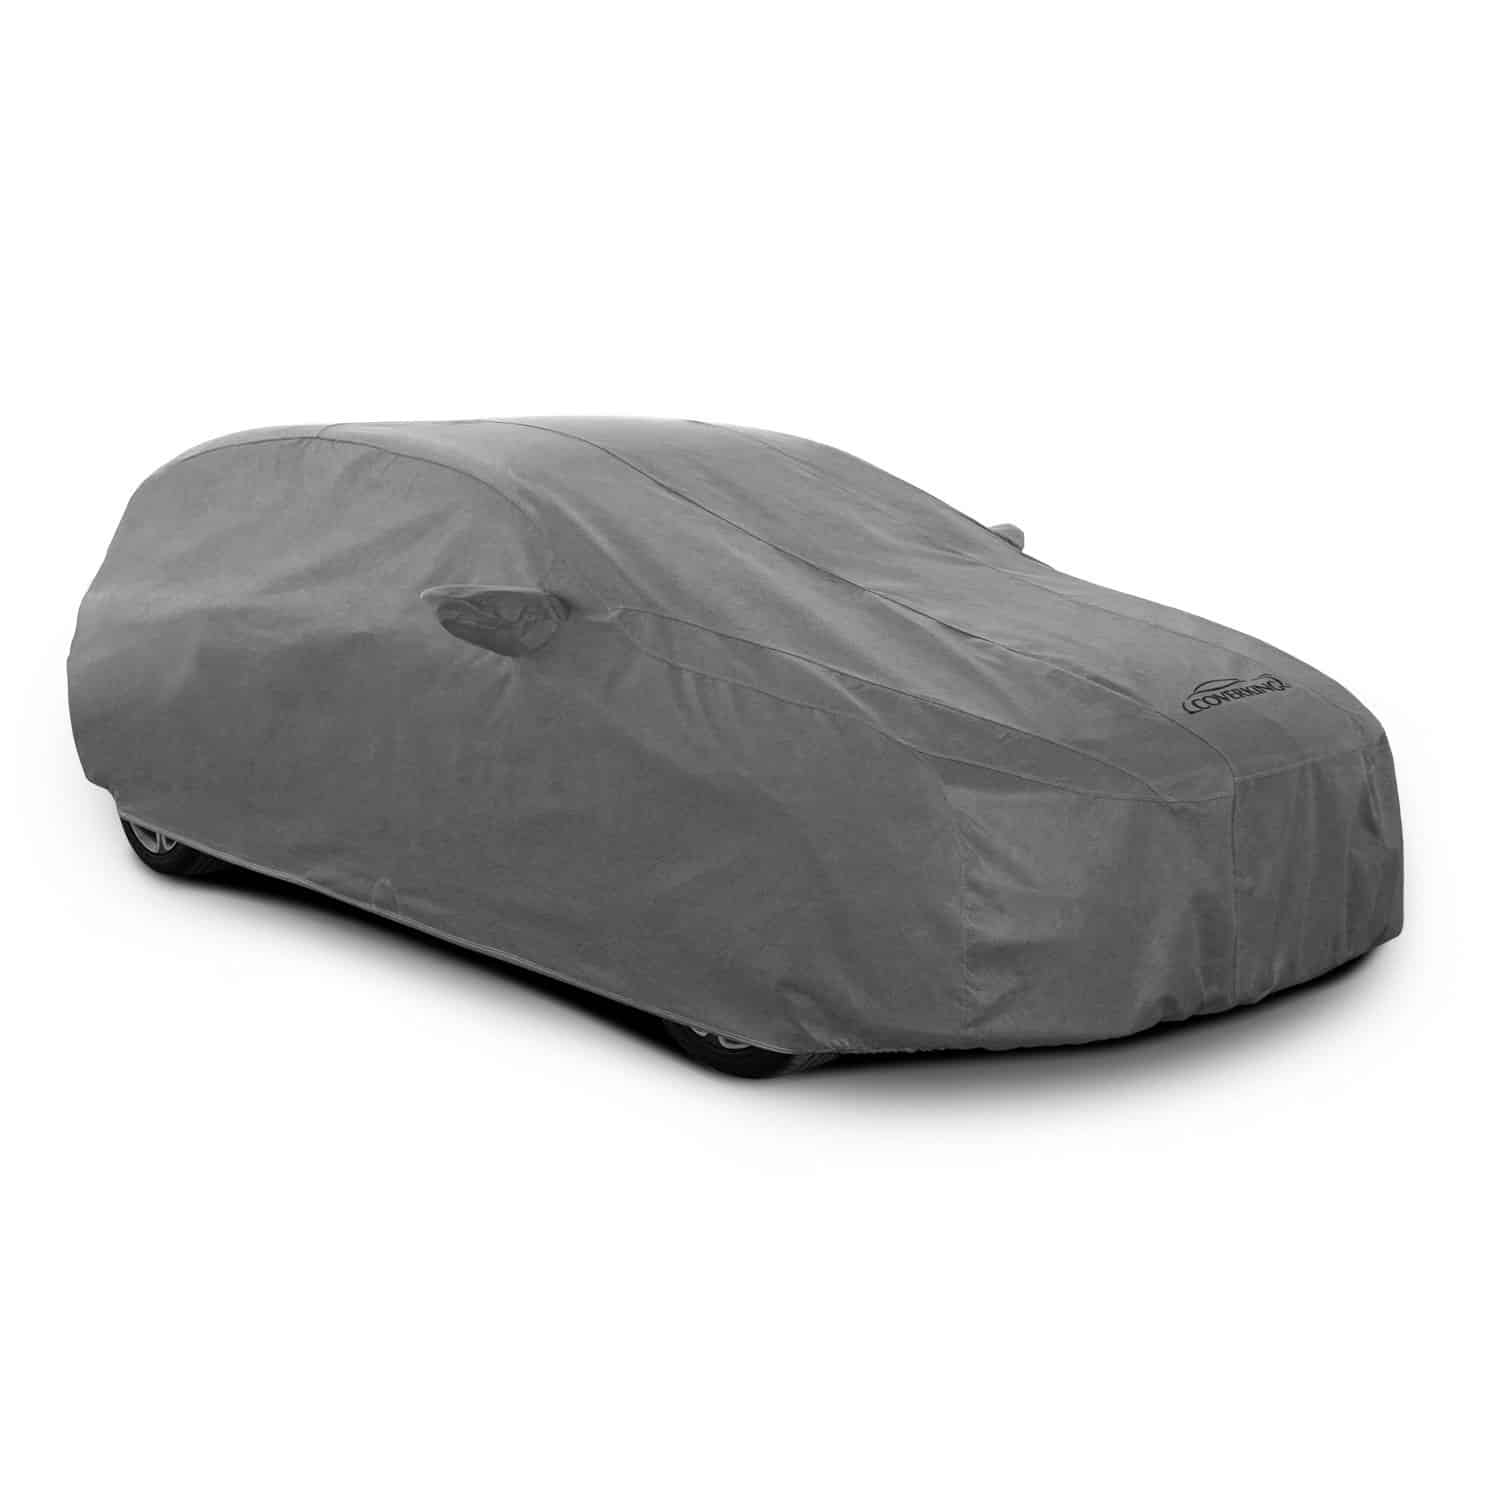 Bmw Z4 Coverking Coverbond 4 Outdoor Car Cover